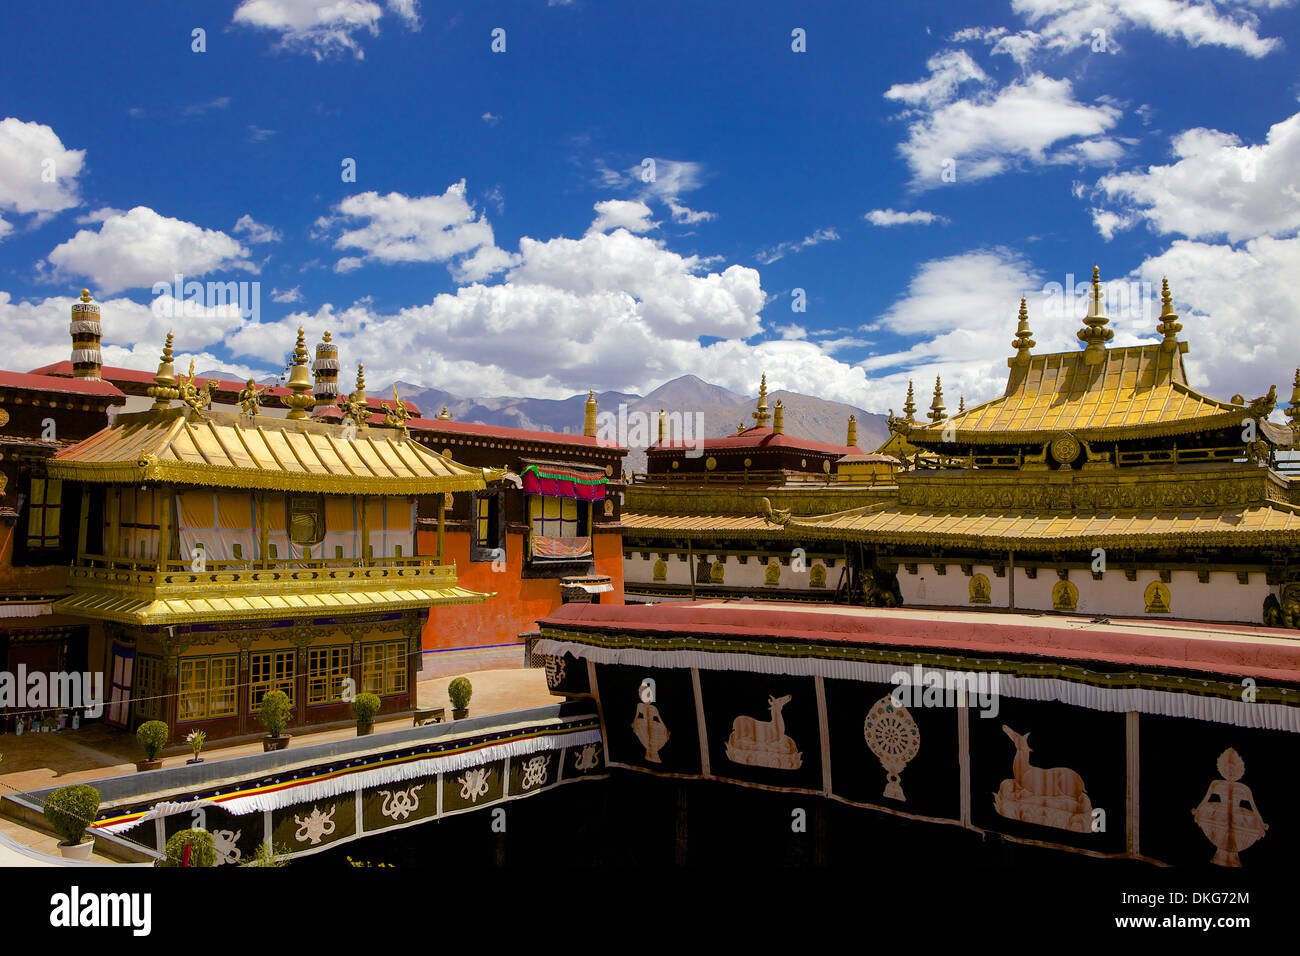 Jokhang Temple, the most revered religious structure, Lhasa, Tibet, China, Asia - Stock Image